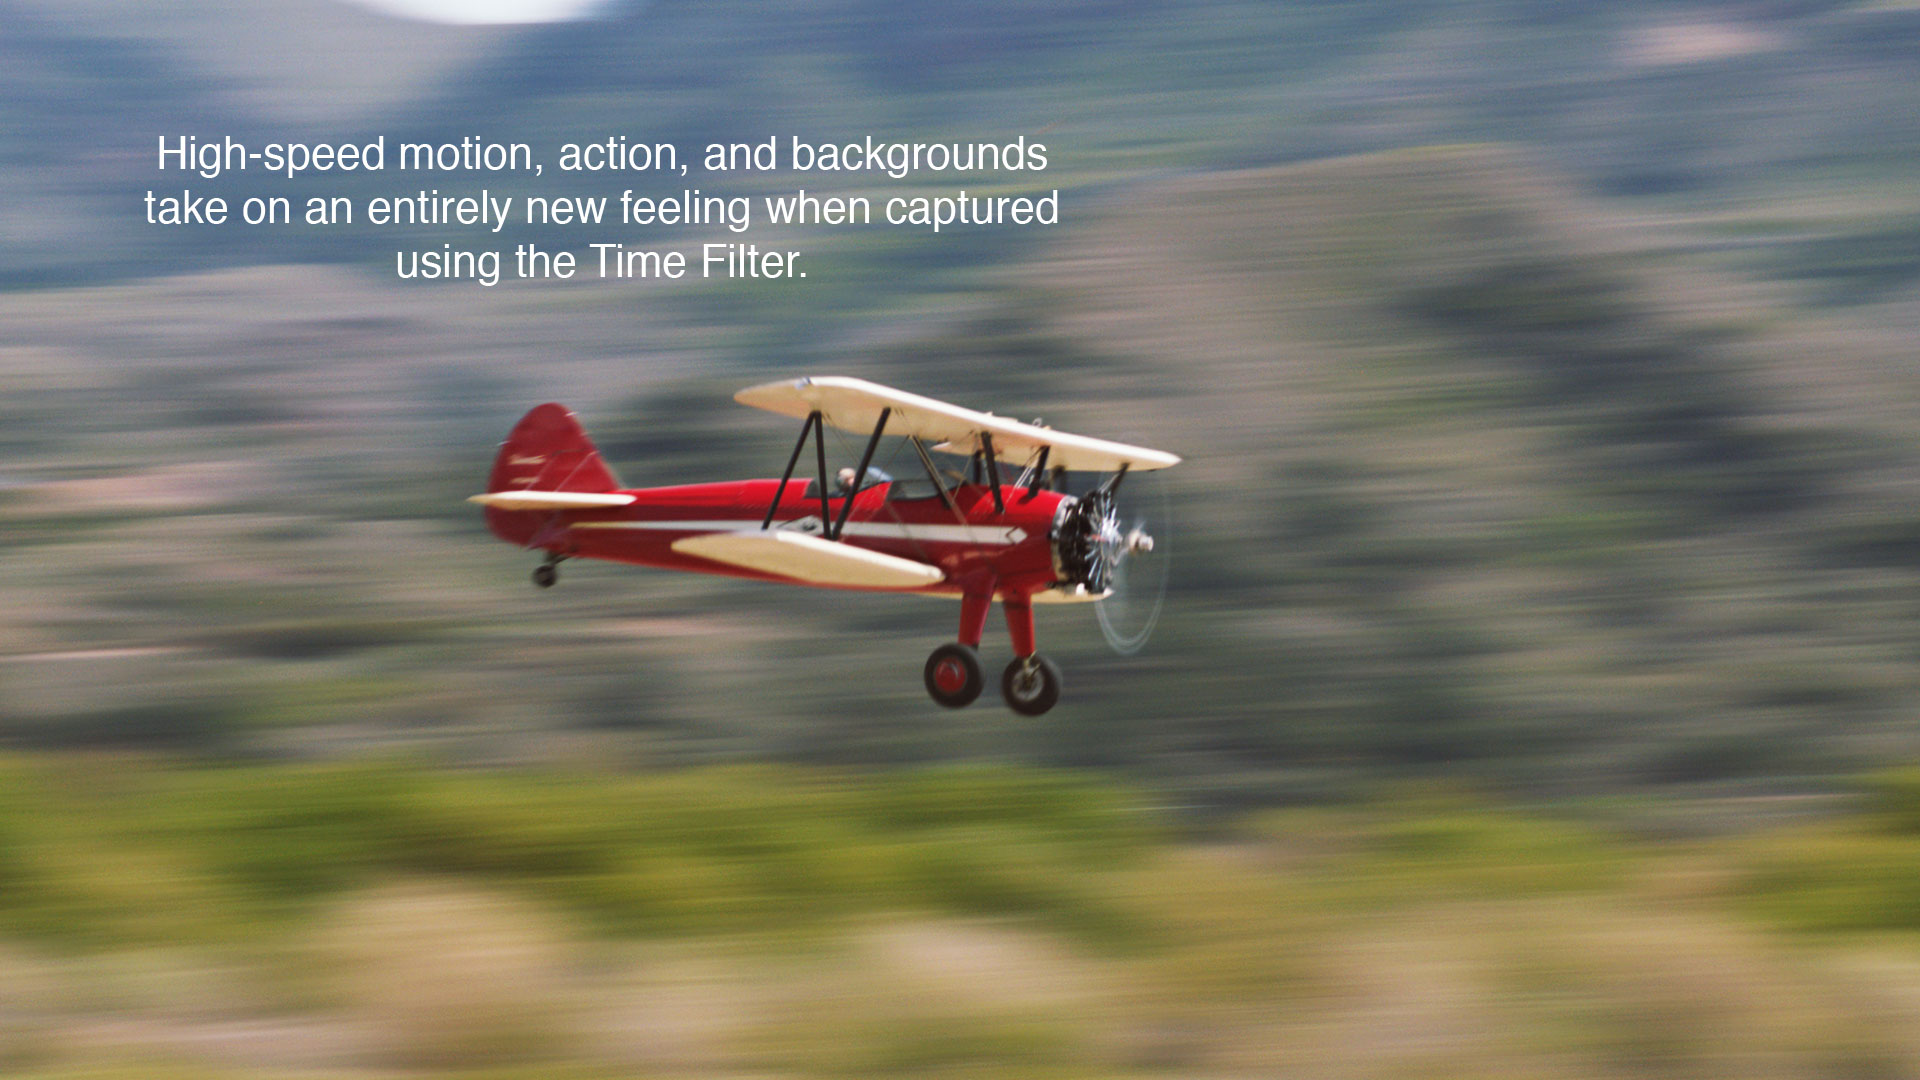 Flyby-with-text.jpg